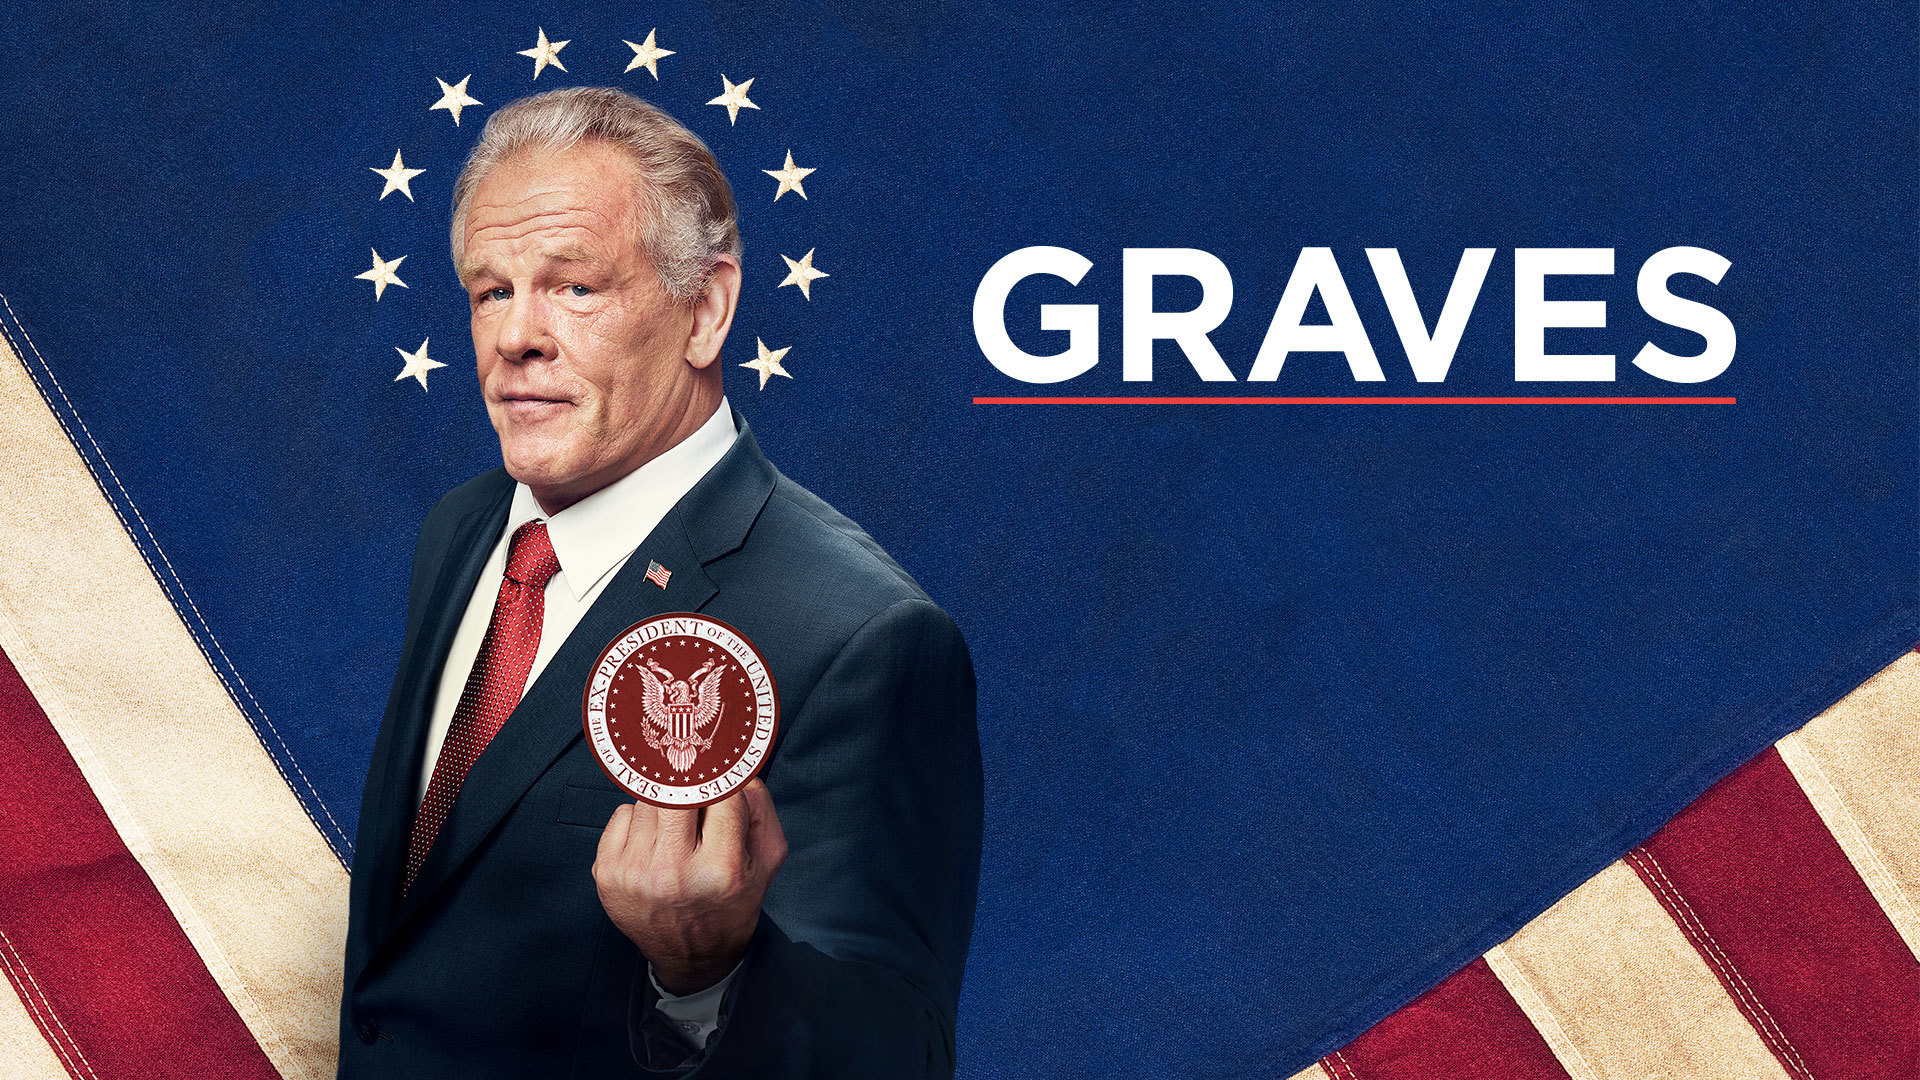 'Graves' Season 1 on DVD